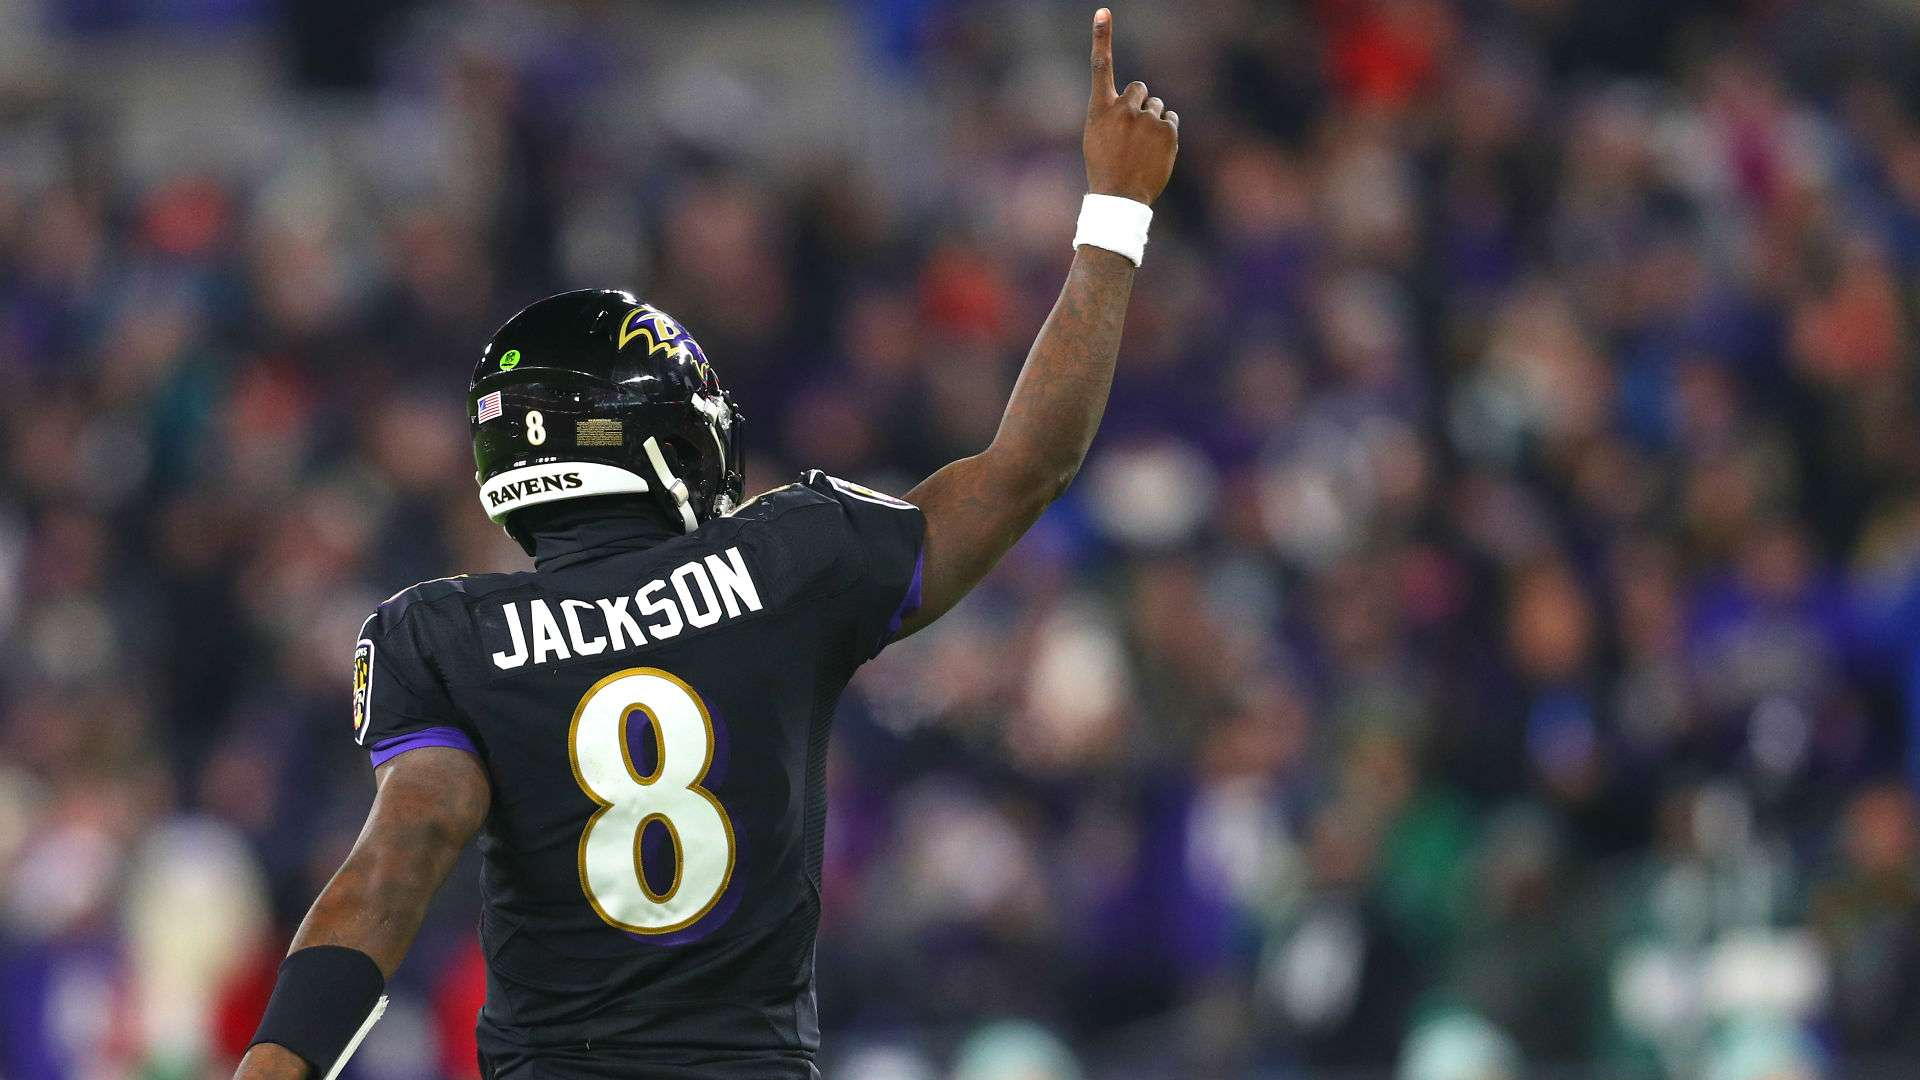 lamar jackson s combine performance dance around 40 yard dash set tone for qb s rise in nfl sporting news lamar jackson s combine performance